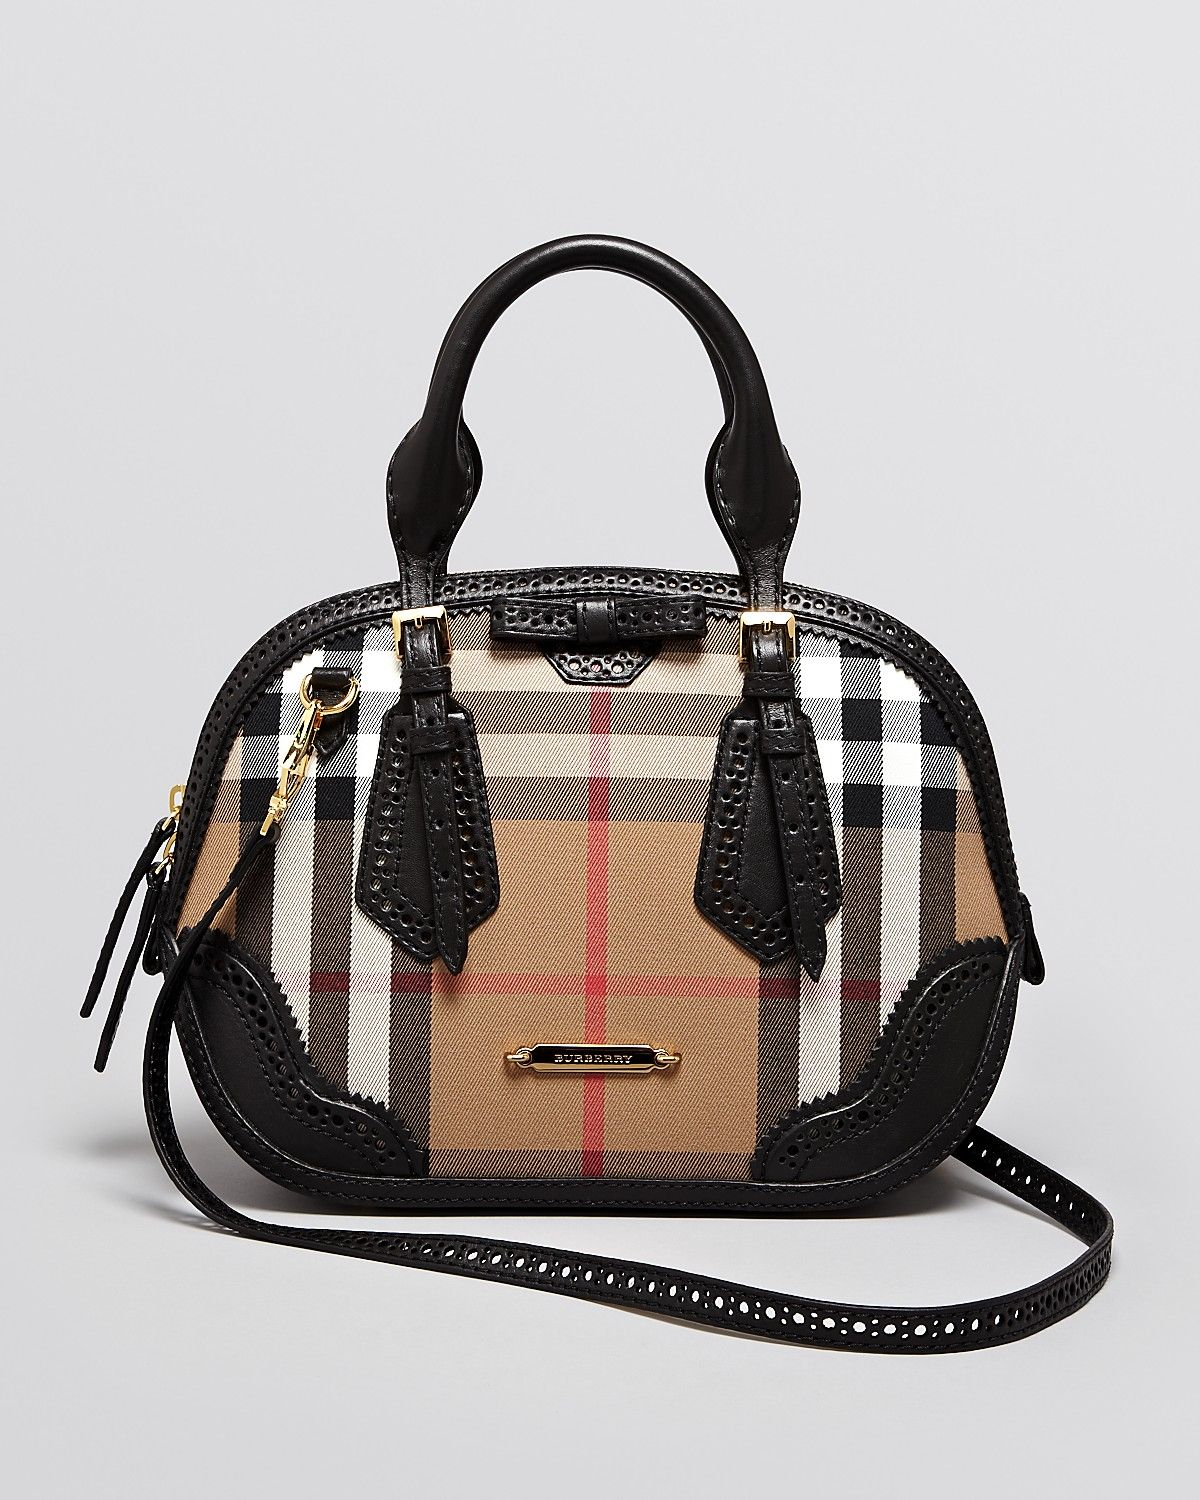 Burberry Small Orchard Satchel